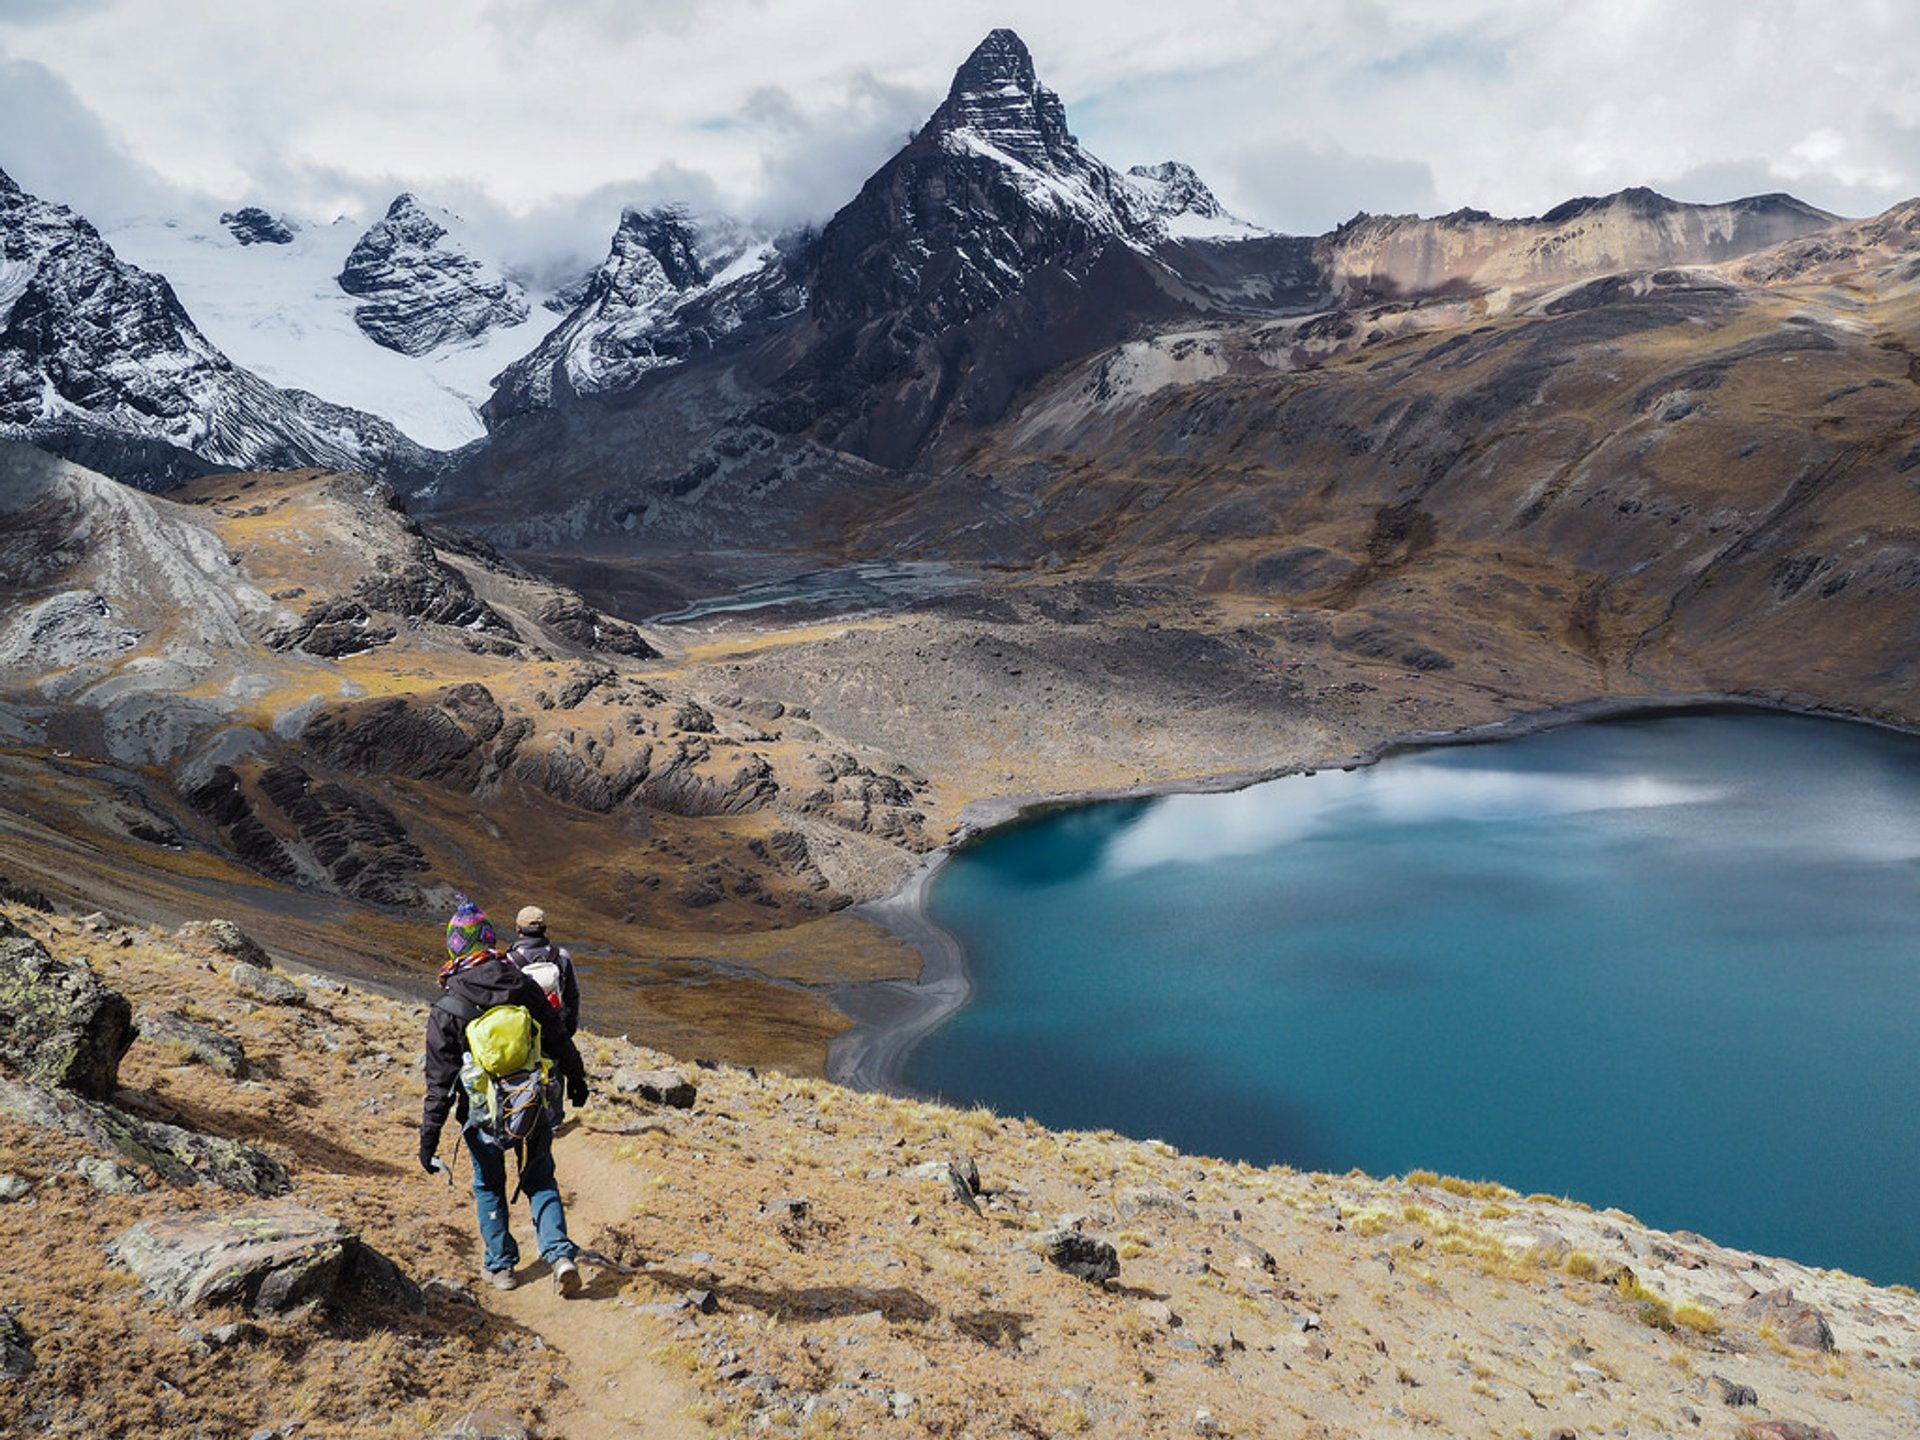 Hiking in Bolivia 2020 - Best Time